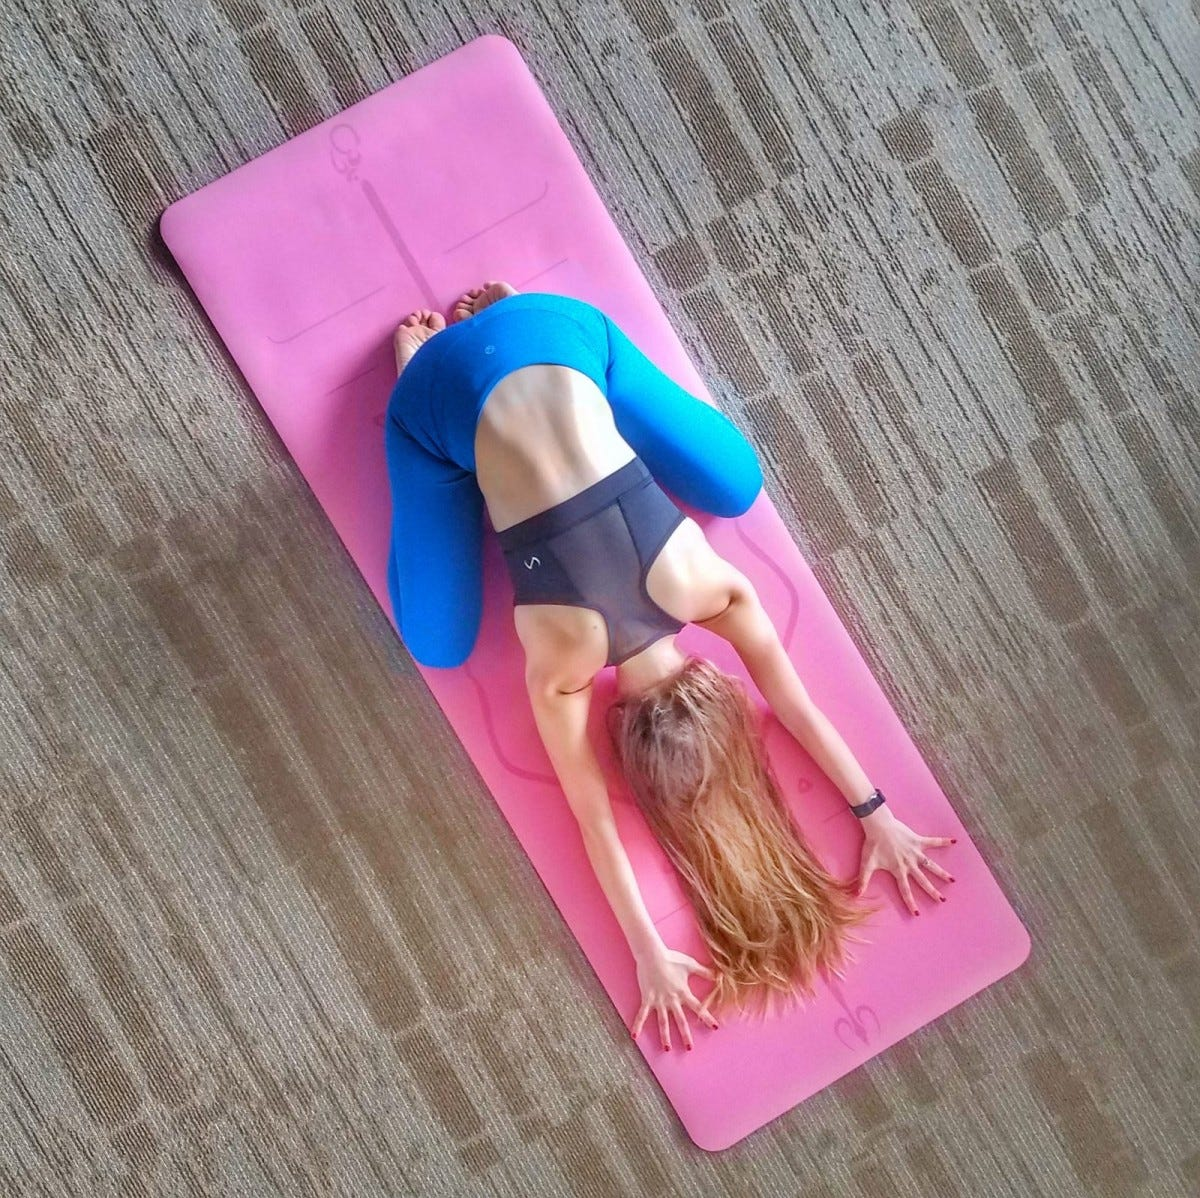 Woman doing child's pose on a pink mat